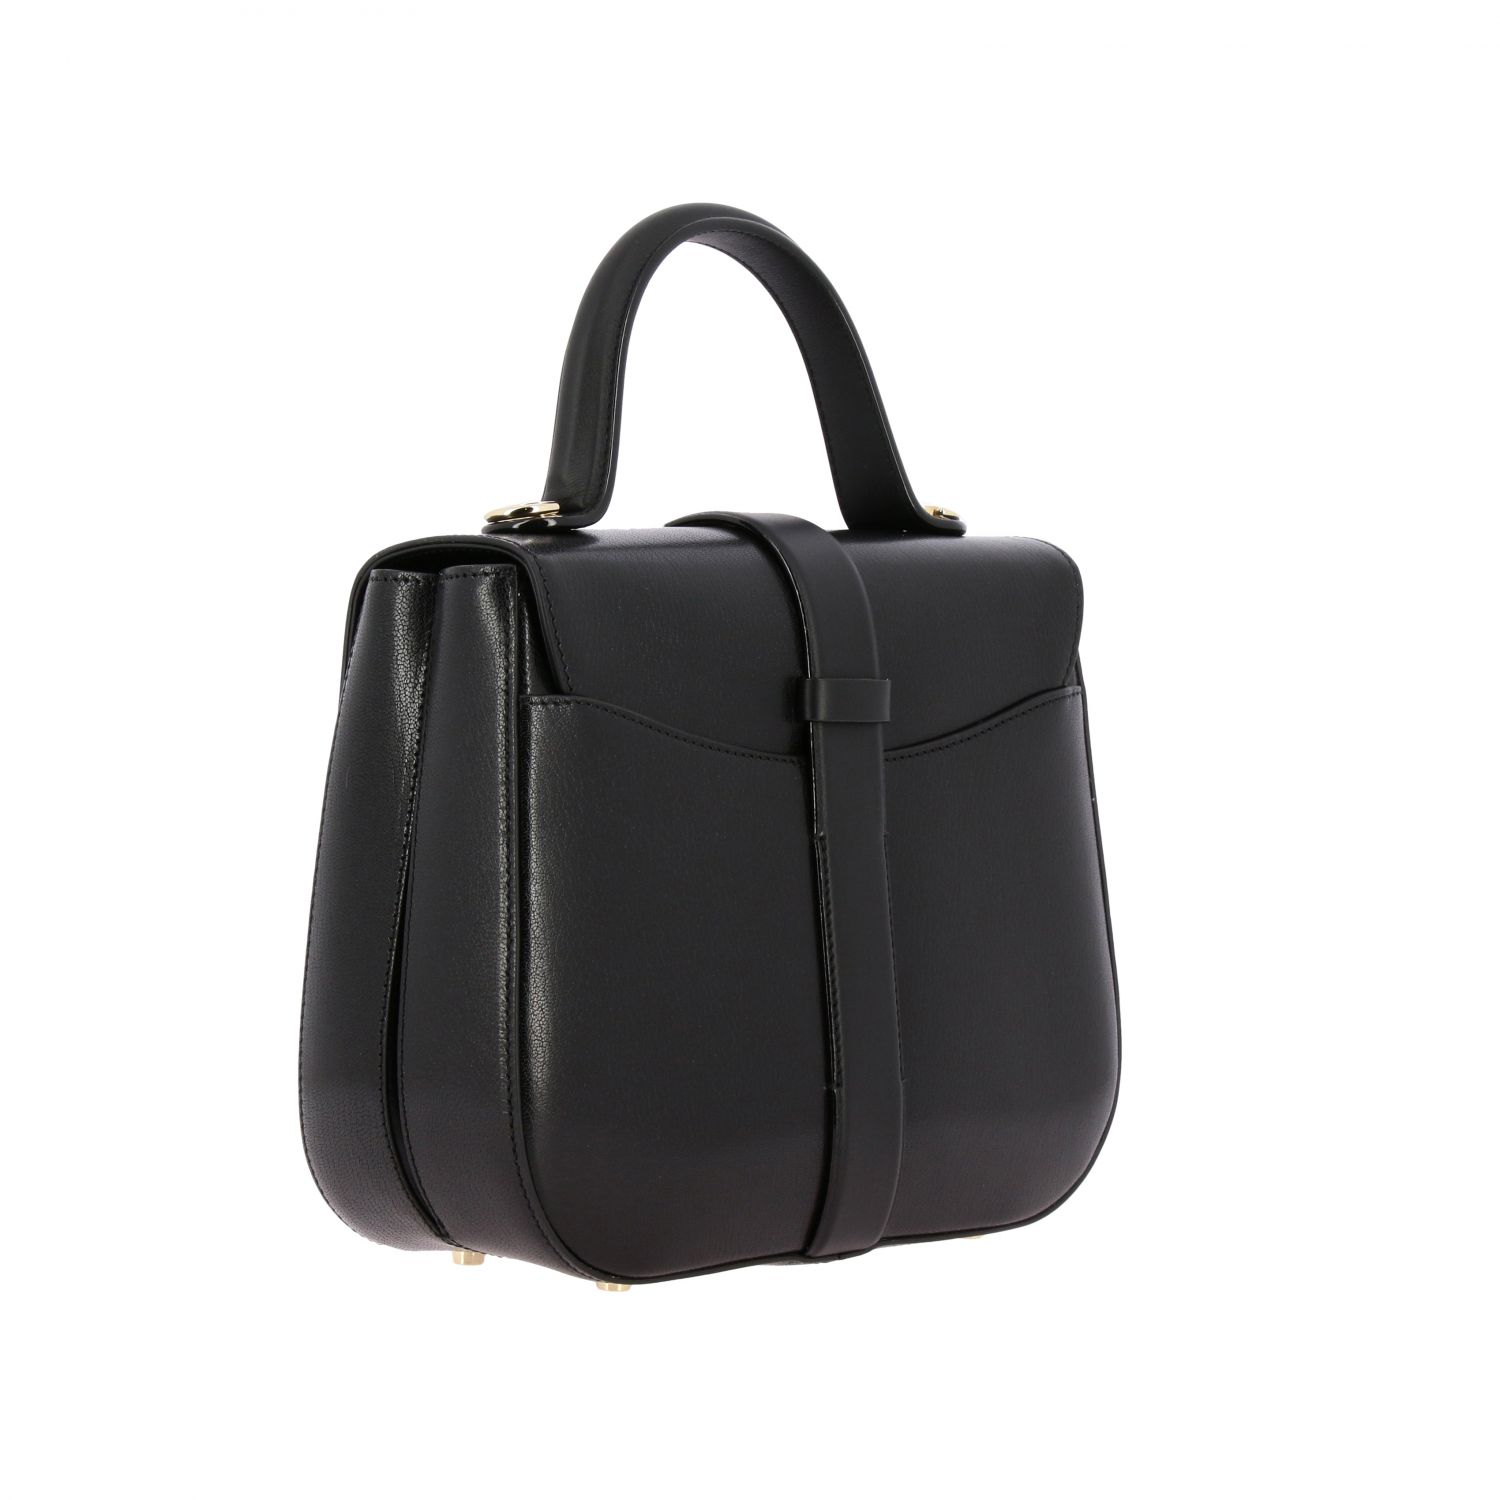 Handbag Roger Vivier: Shoulder bag women Roger Vivier black 3